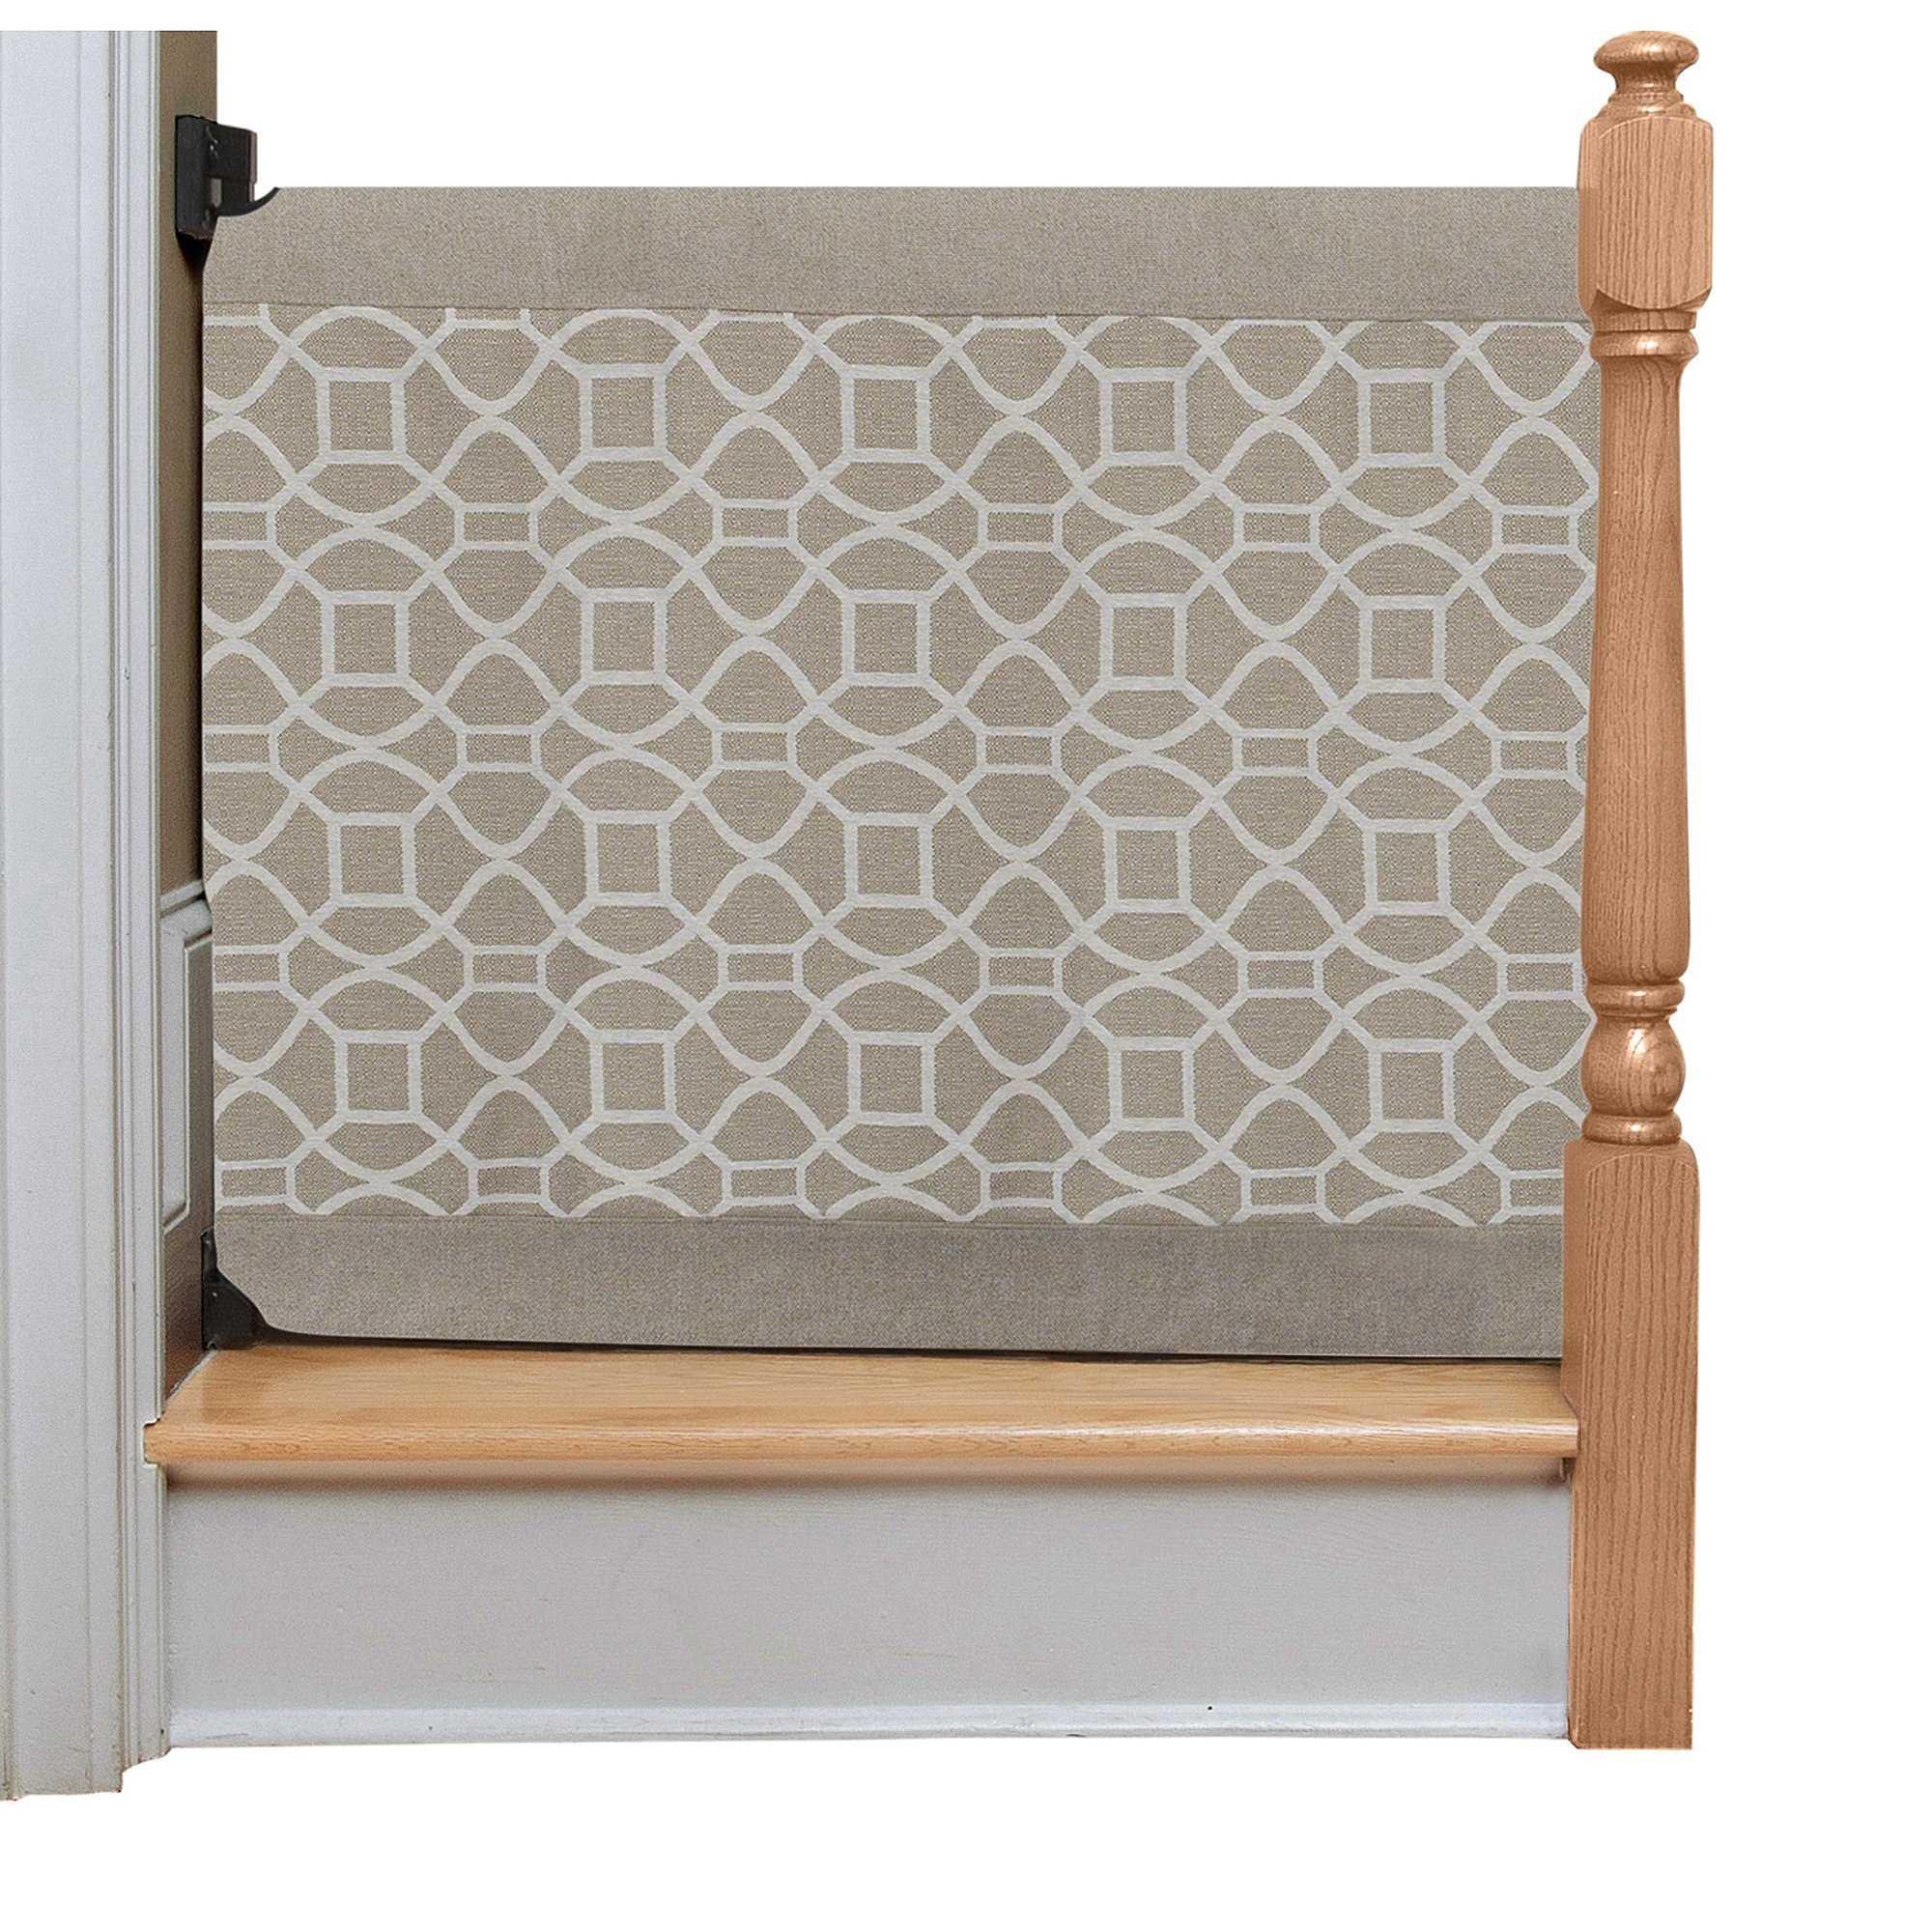 The Stair Barrier Wall to Banister Gate, Beige Geo, Regular by The Stair Barrier